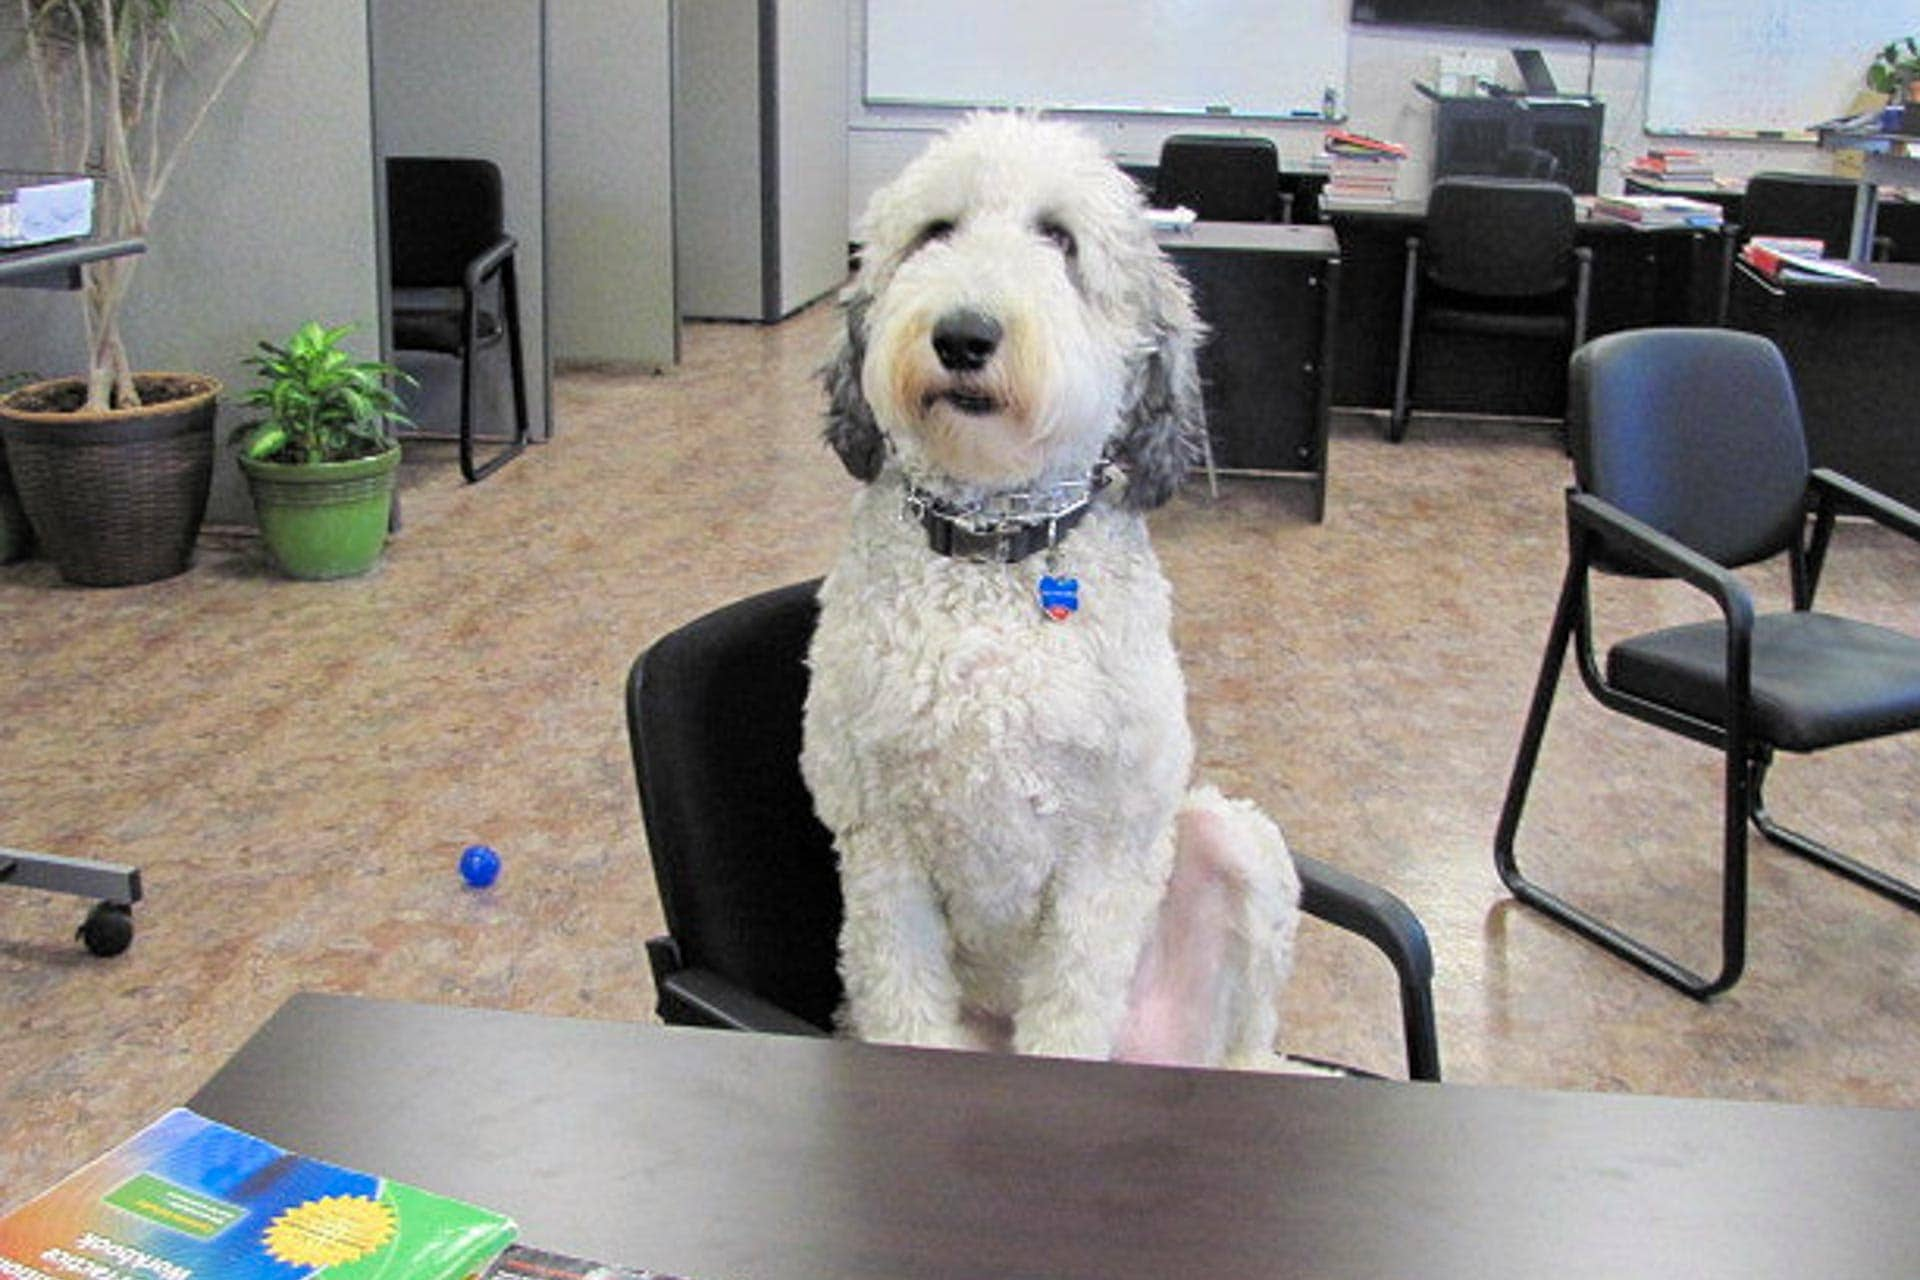 Ollie goes to school: Certified therapy dog offers love, acceptance to students in PALS program